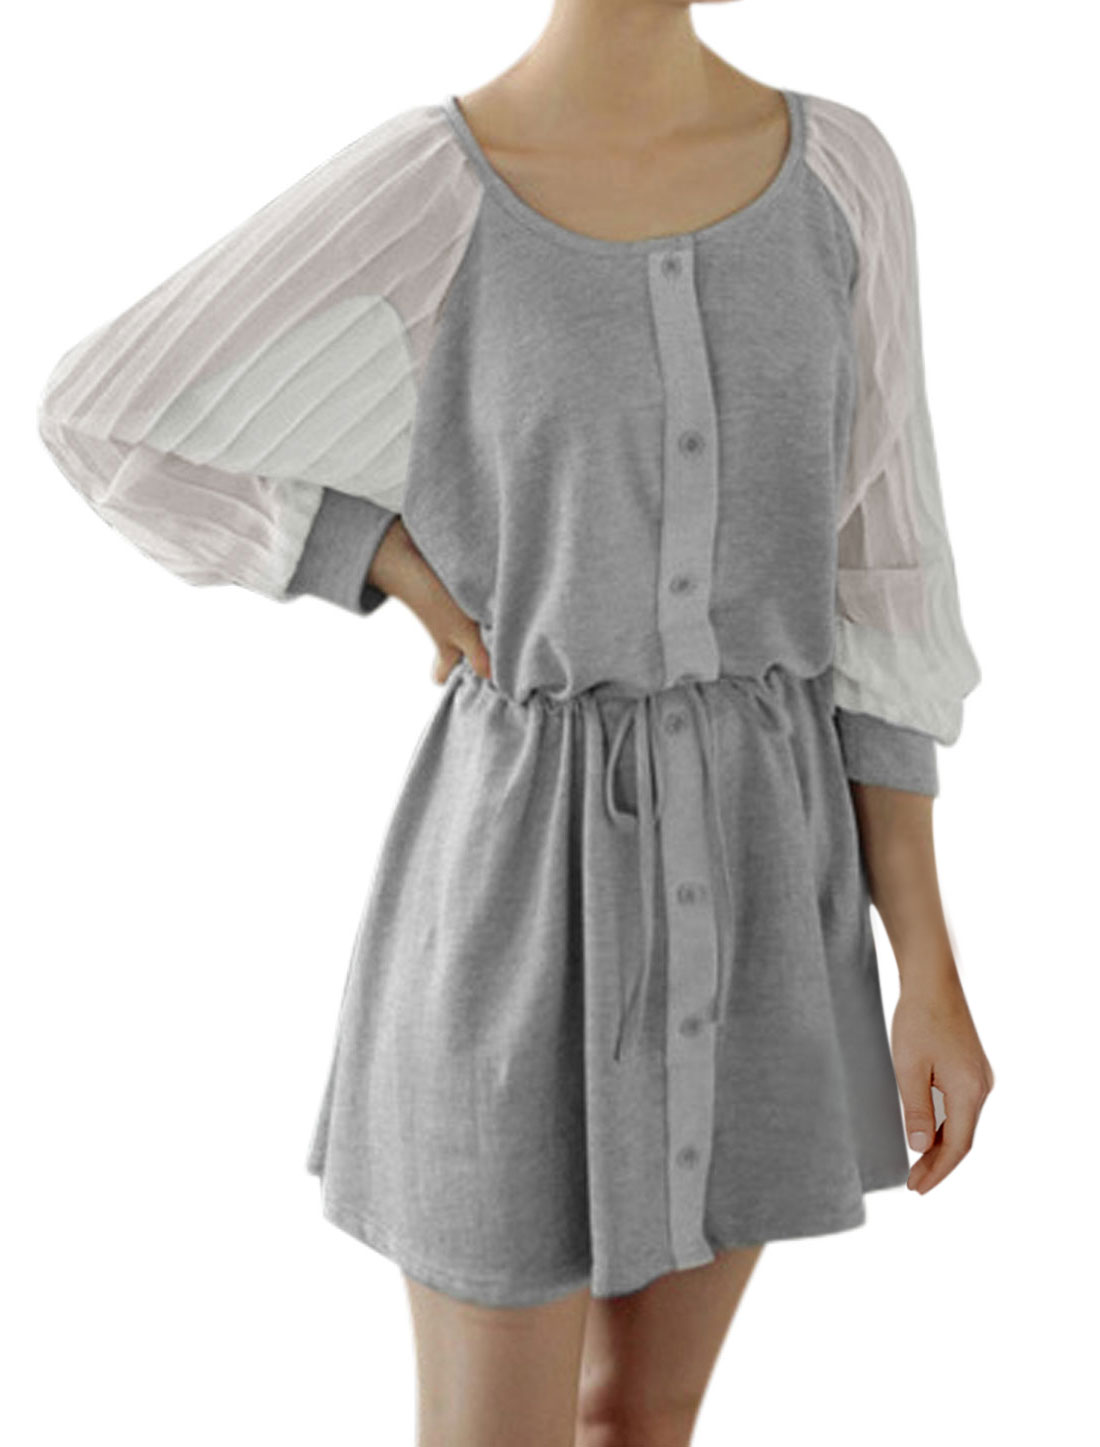 Lady Batwing Sleeve Single Breasted Casual Tunic Dress Light Gray XS